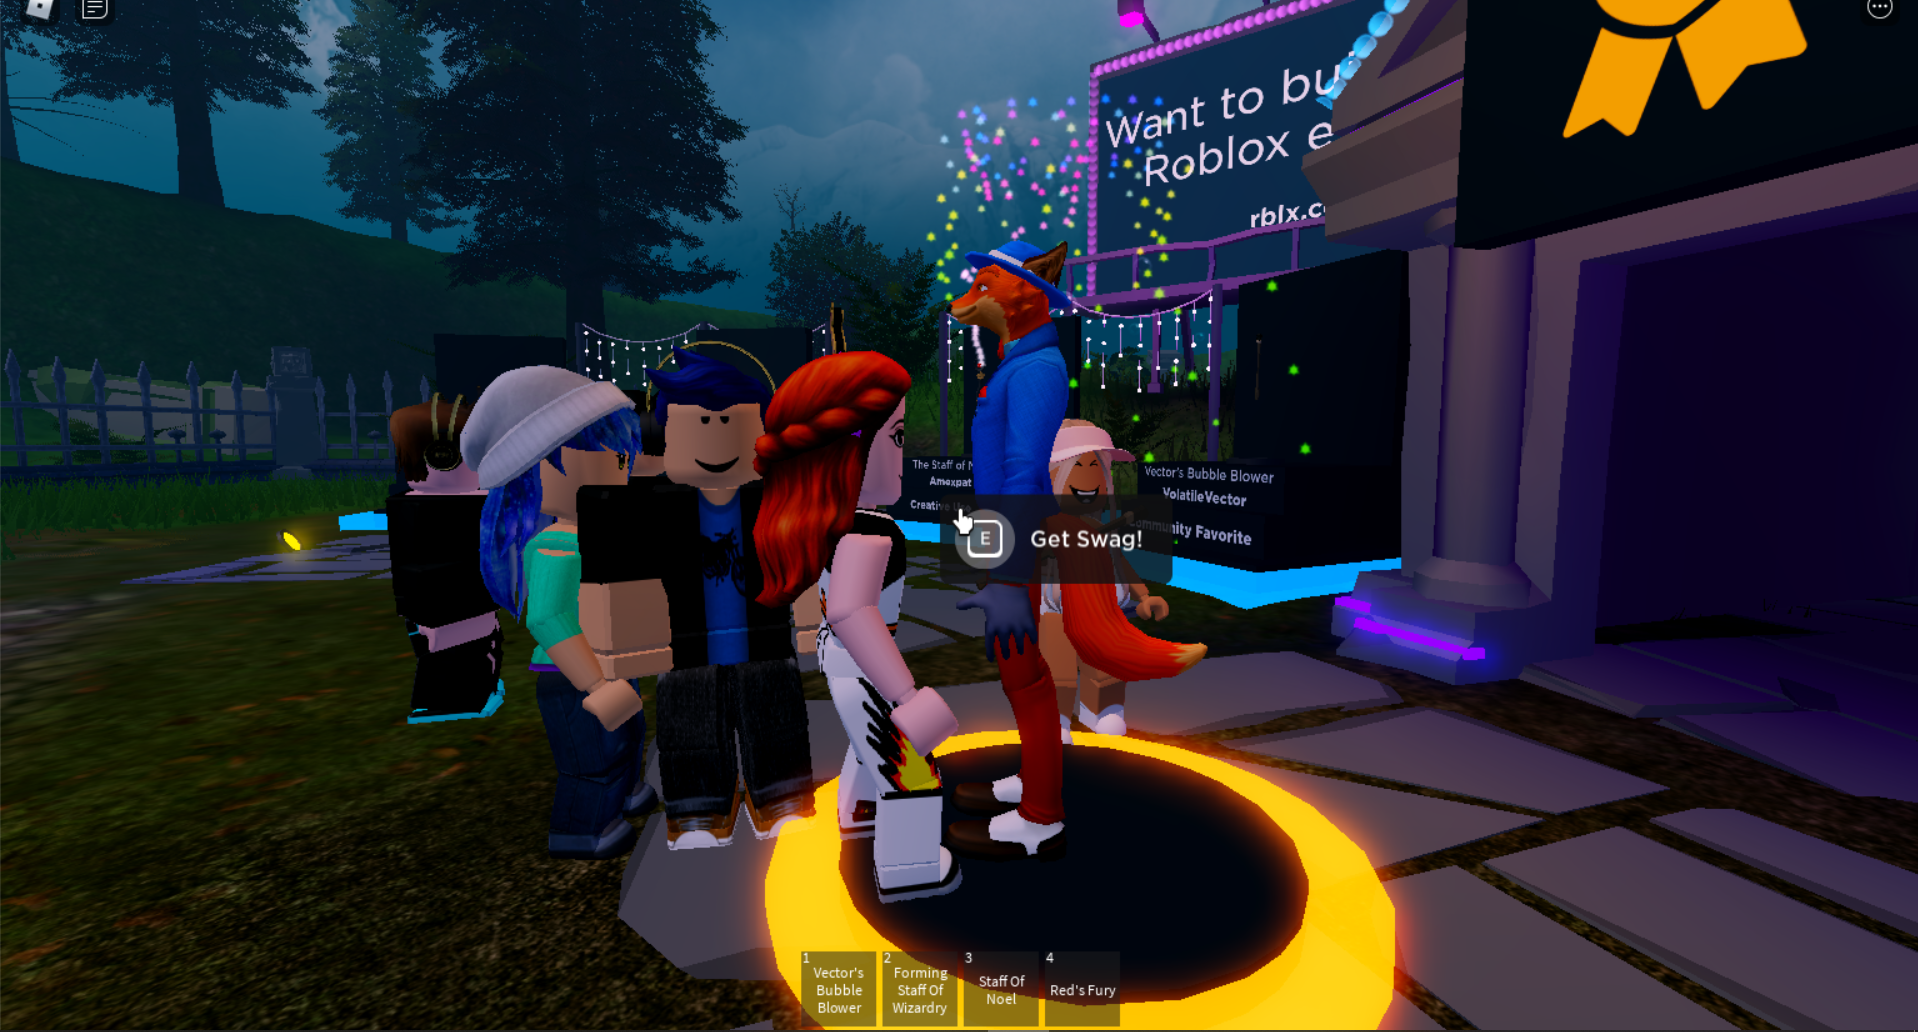 Exclusive Working Roblox Promo Codes - September 2021 18